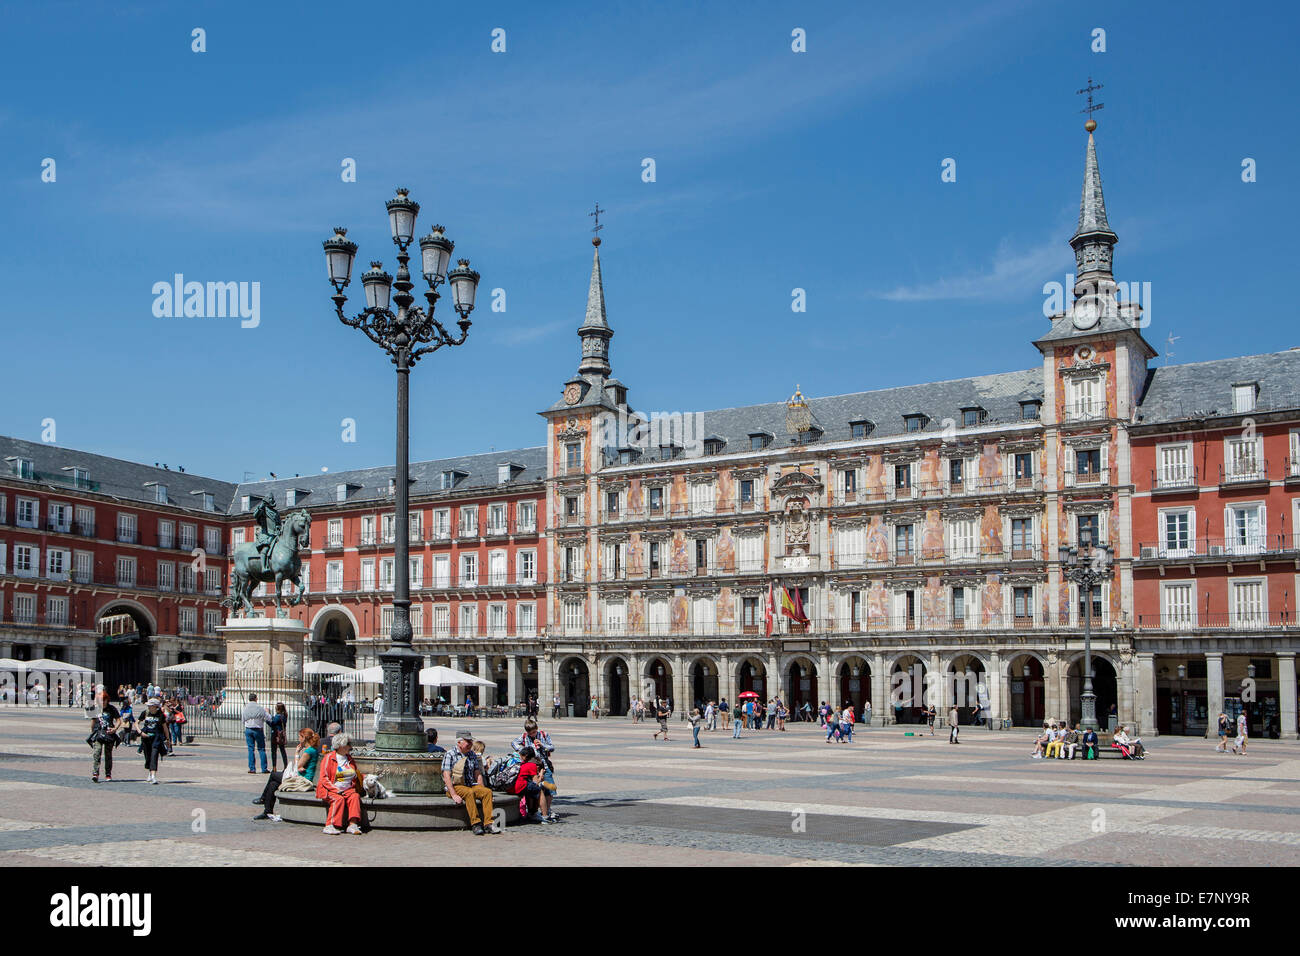 City, Madrid, Mayor, Philip III, Spain, Europe, Square, architecture, downtown, monument, plaza, tourism, travel - Stock Image